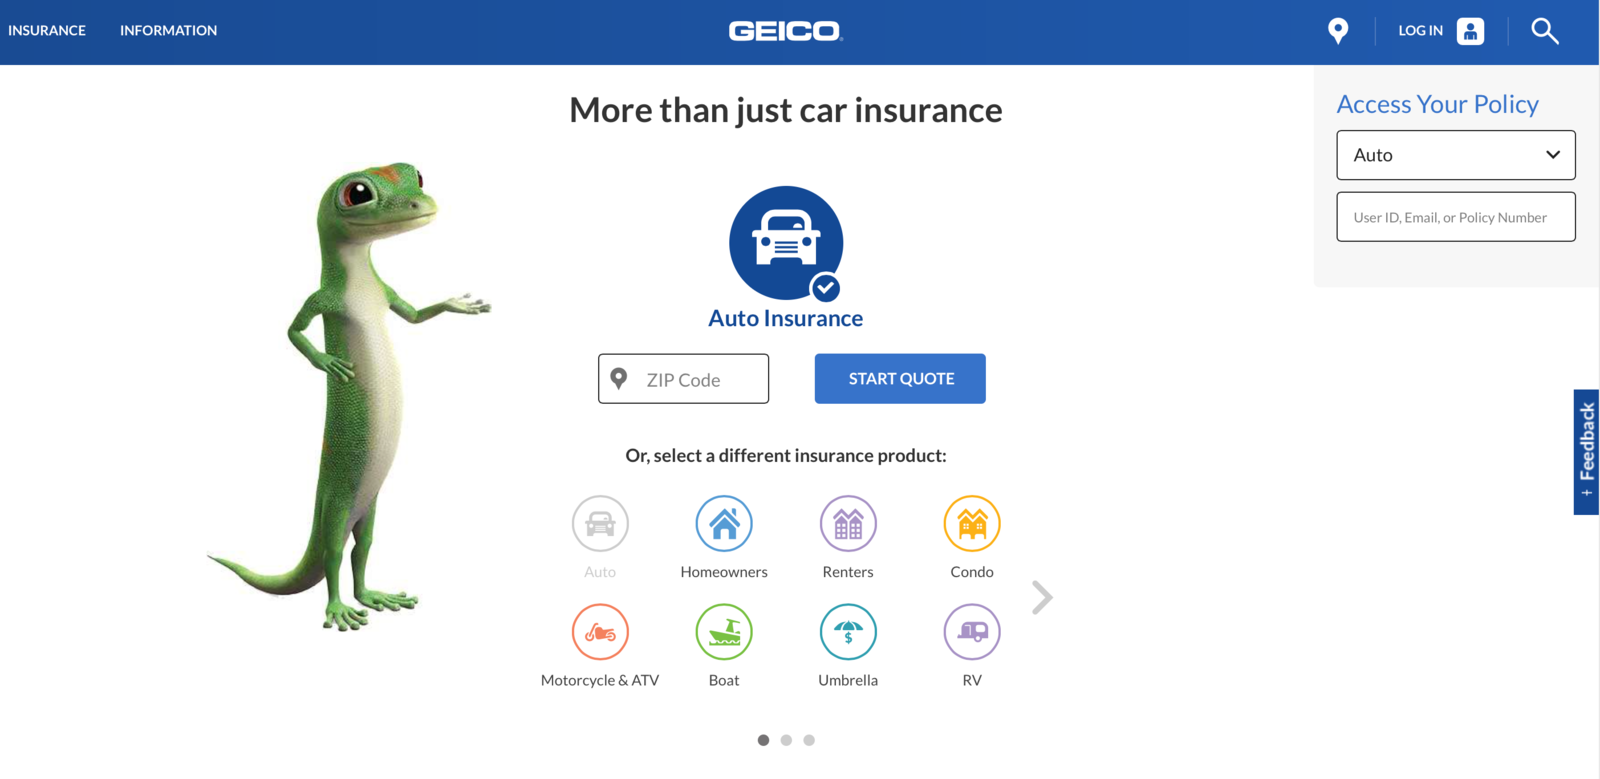 geico website start quote screen